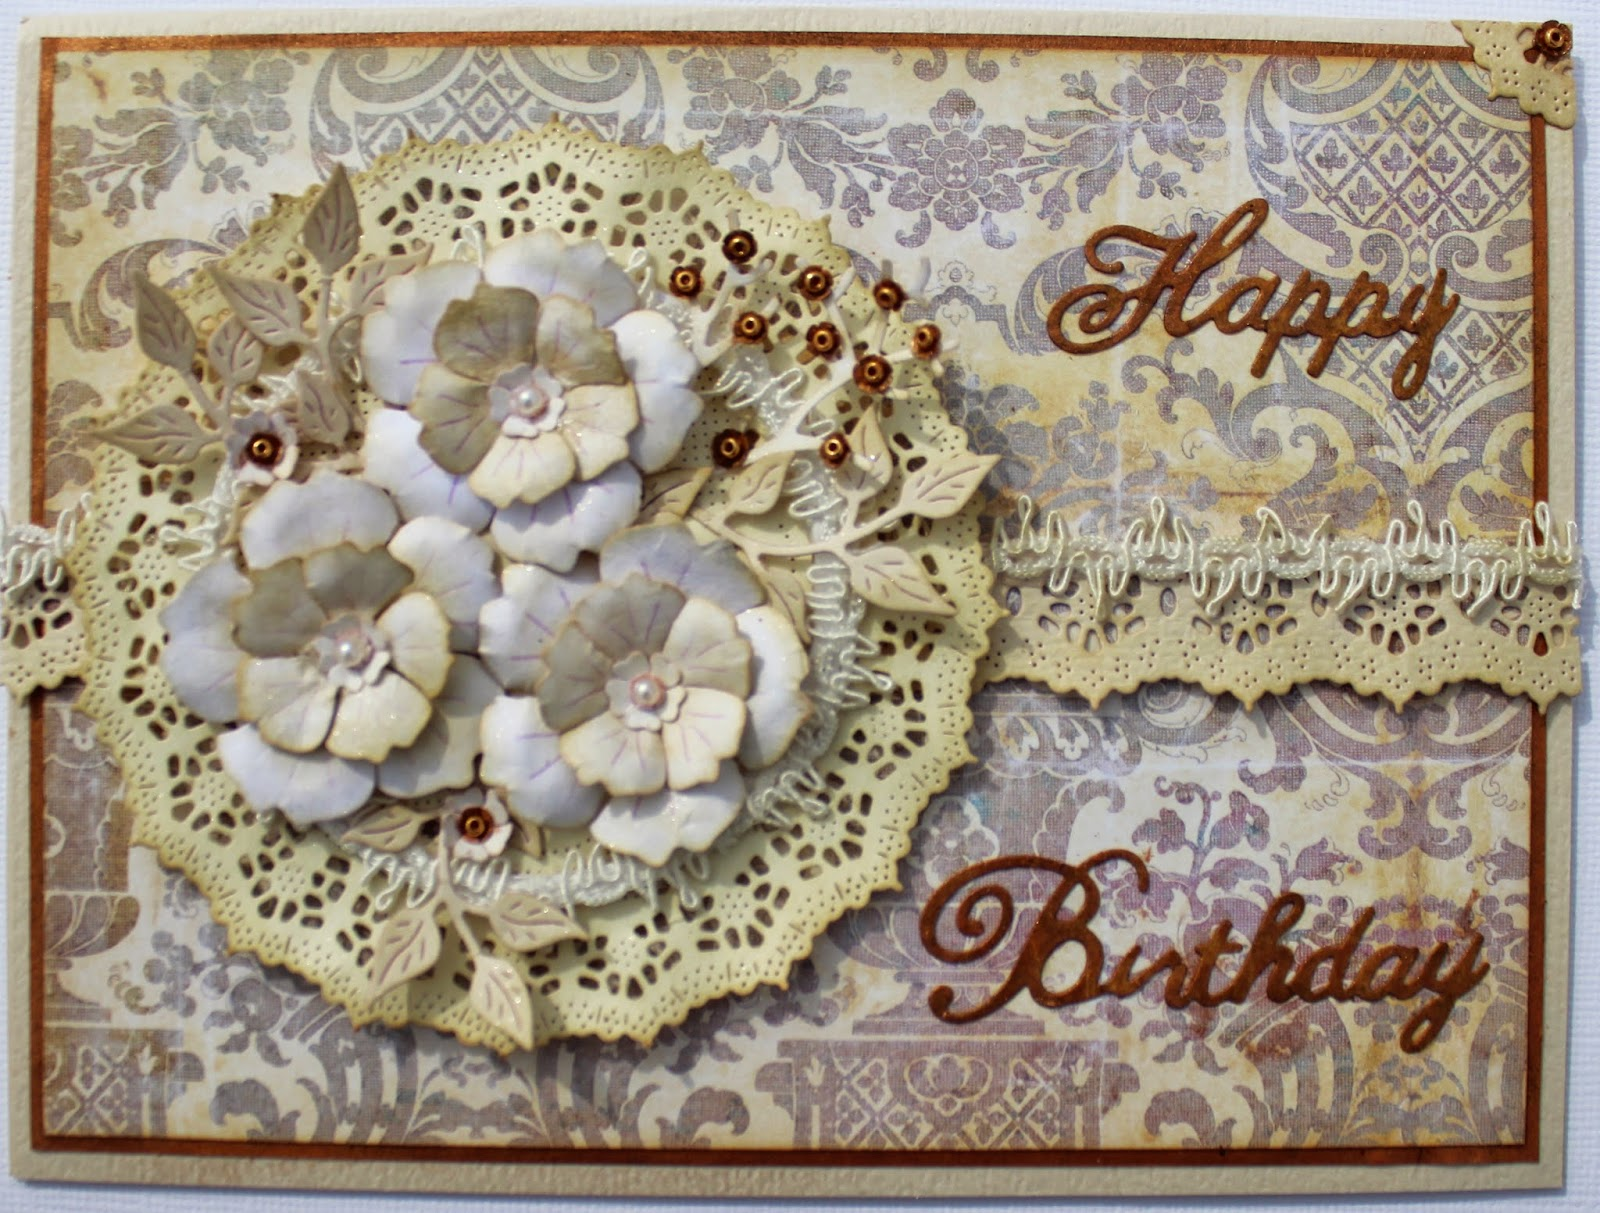 corina finley designs vintage happy birthday card, Birthday card